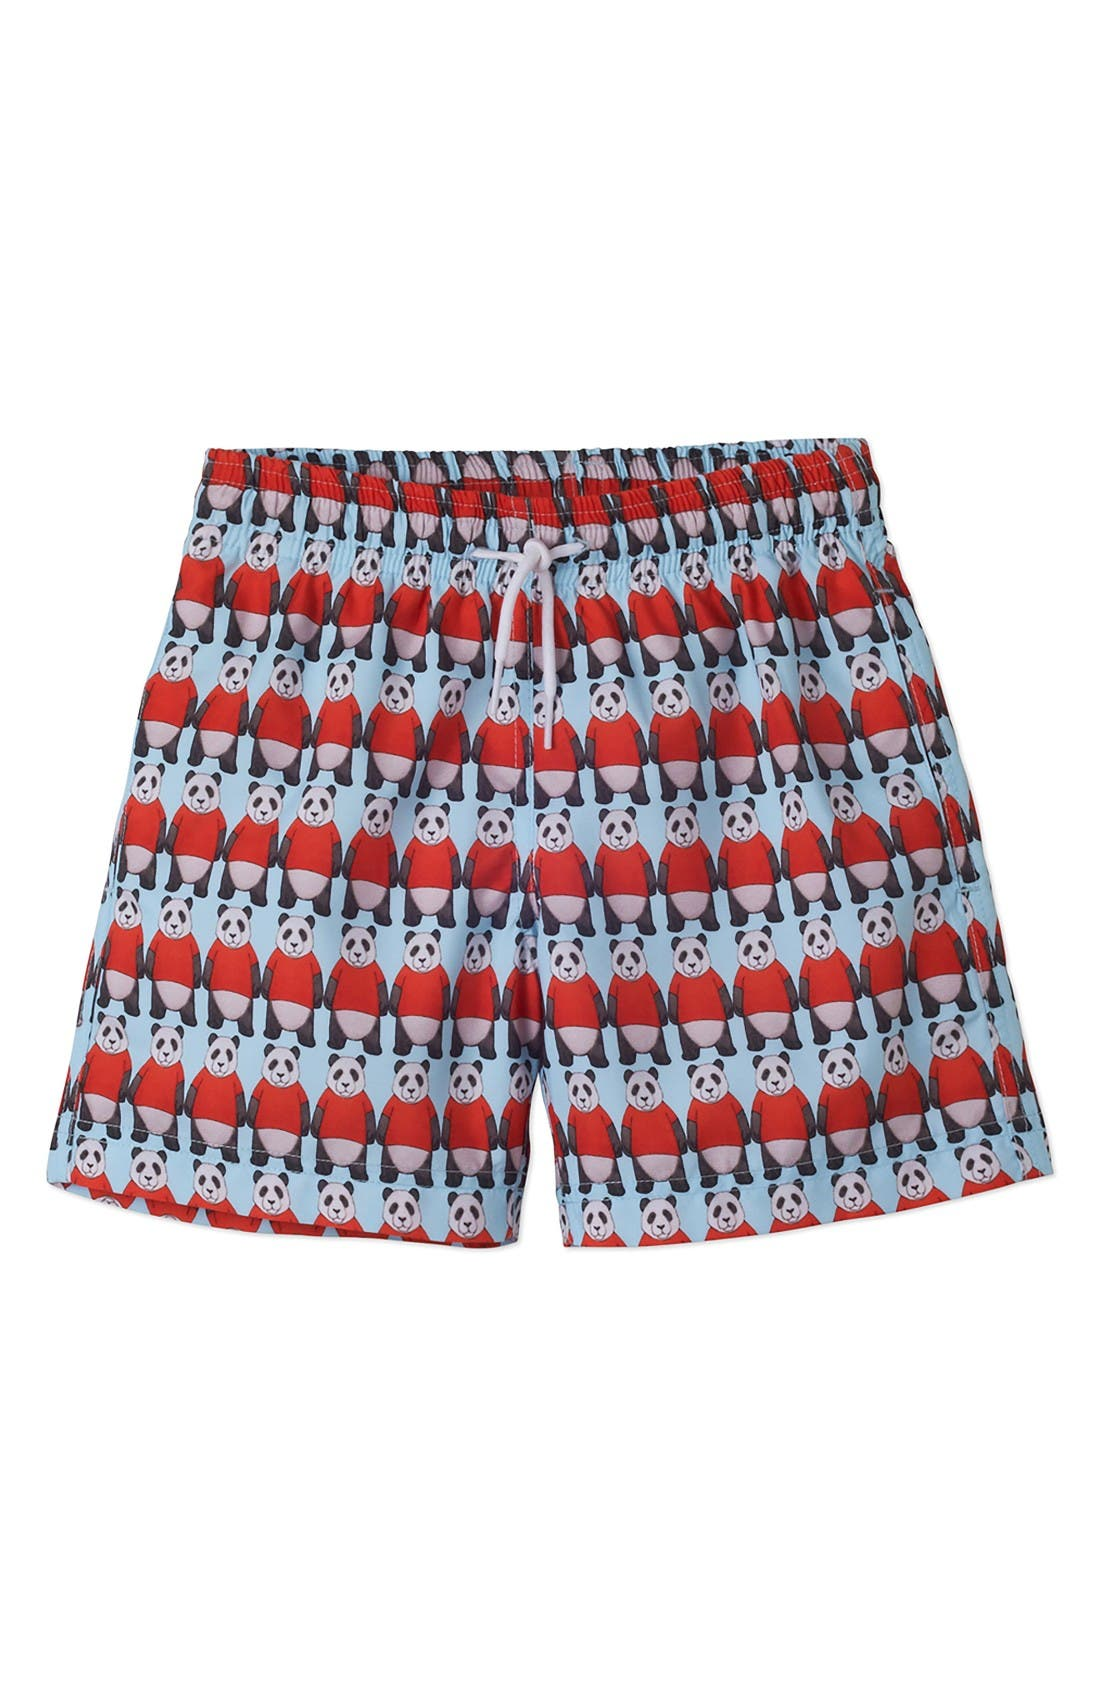 Main Image - Stella Cove Panda Swim Trunks (Toddler Boys & Little Boys)